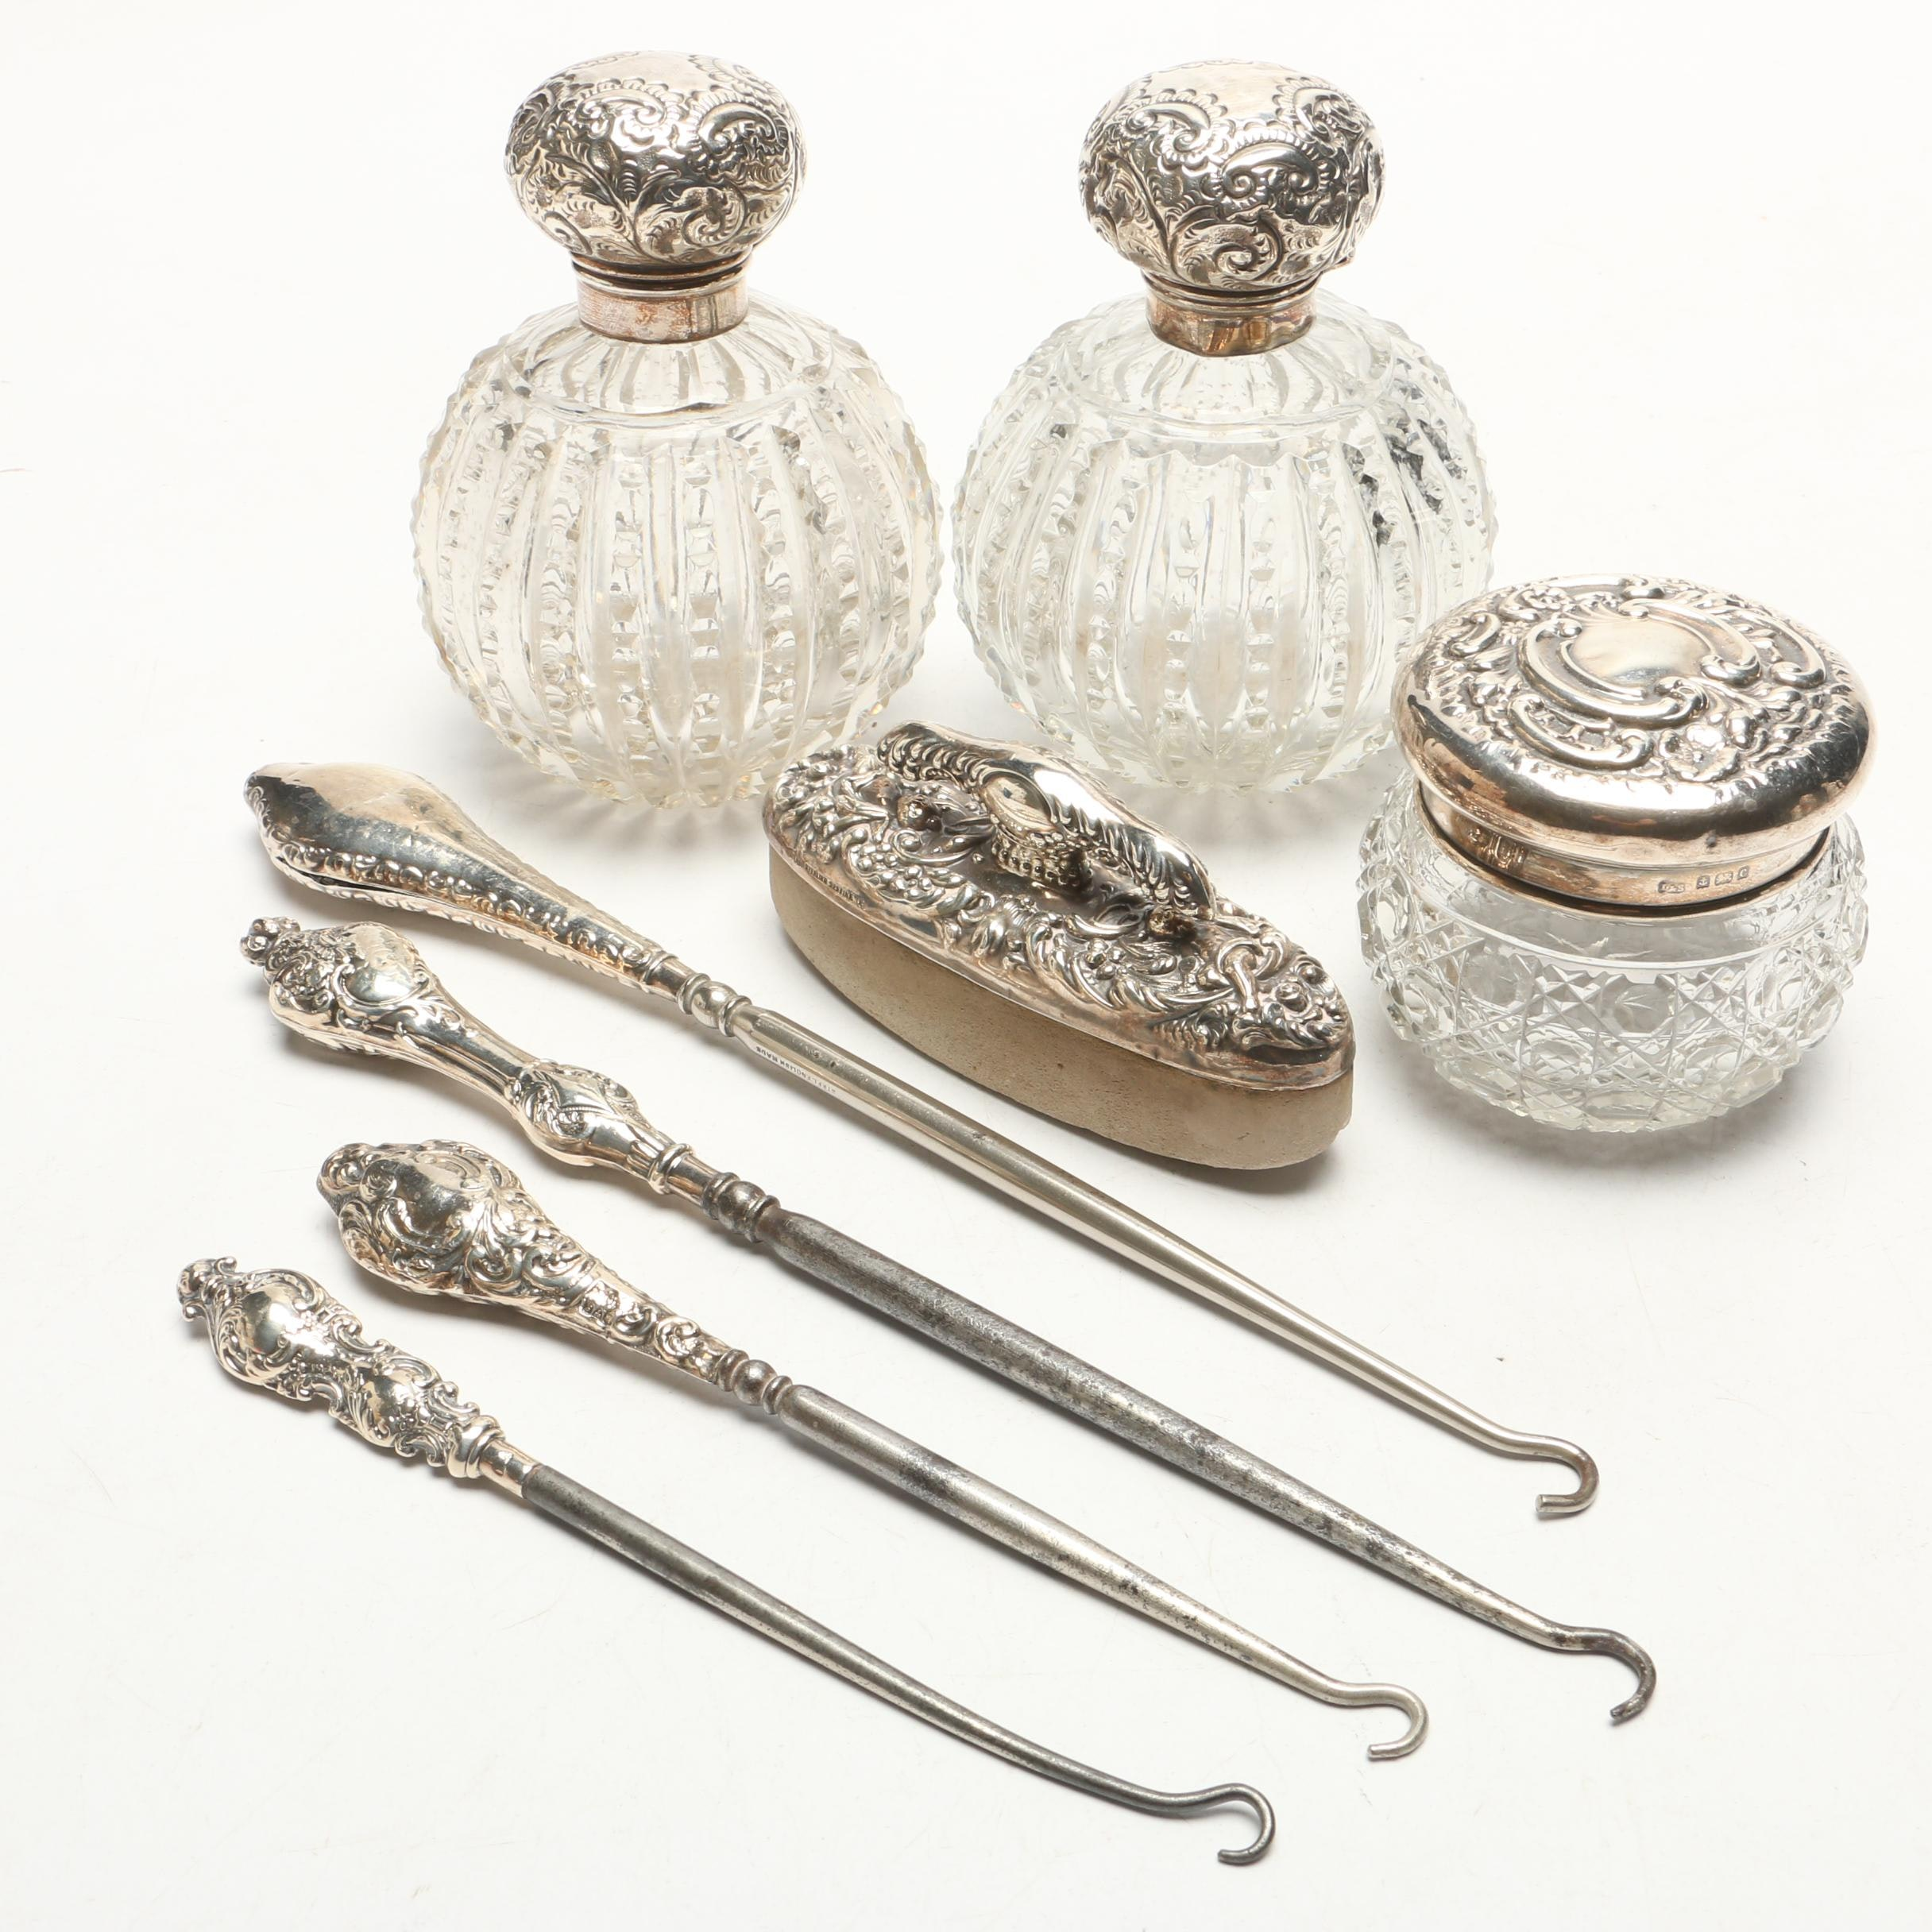 S & A Birmingham Sterling Silver Perfume Bottles and Vanity, Early 20th Century